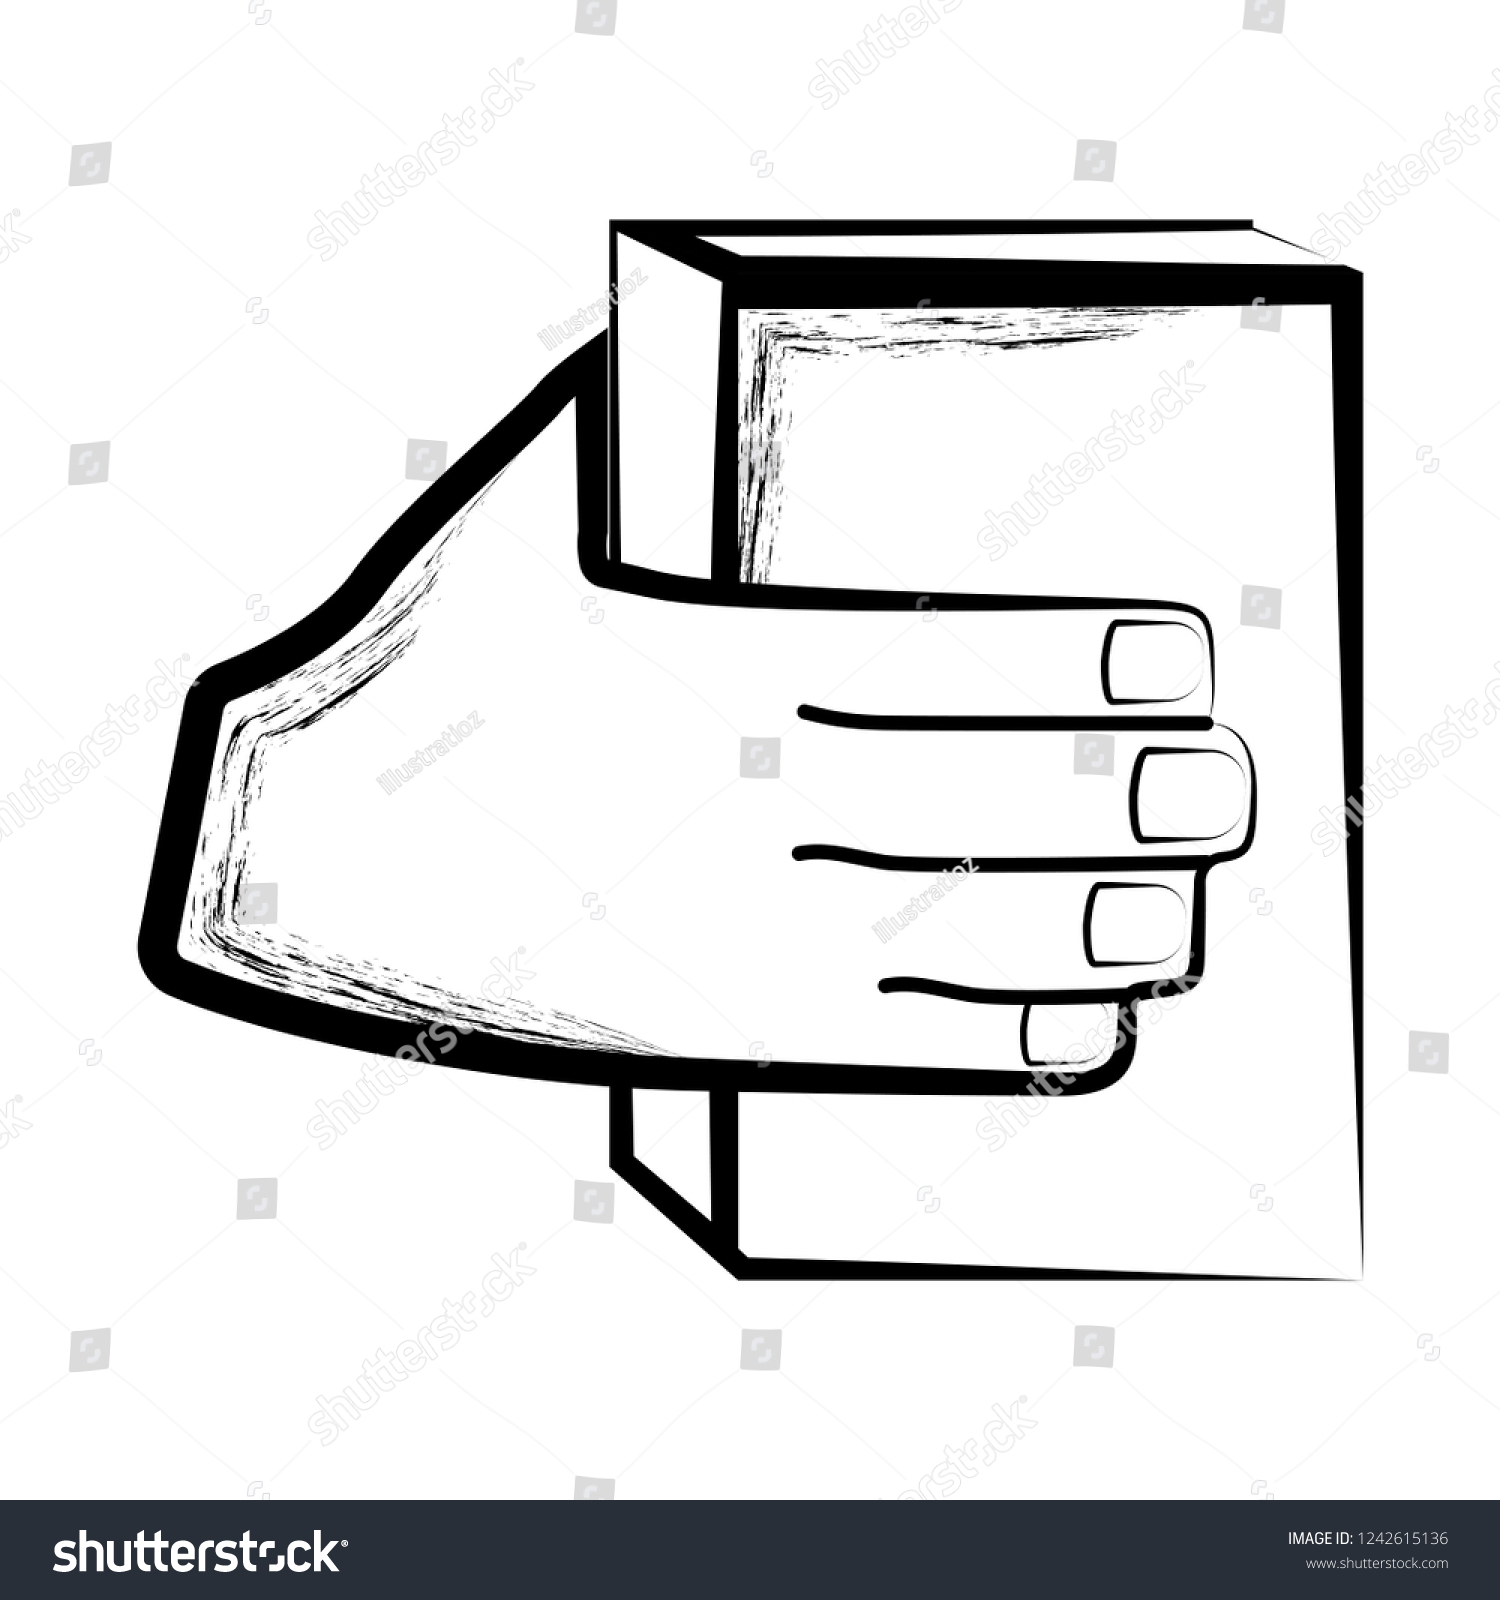 Sketch of a hand holding a book vector illustration design